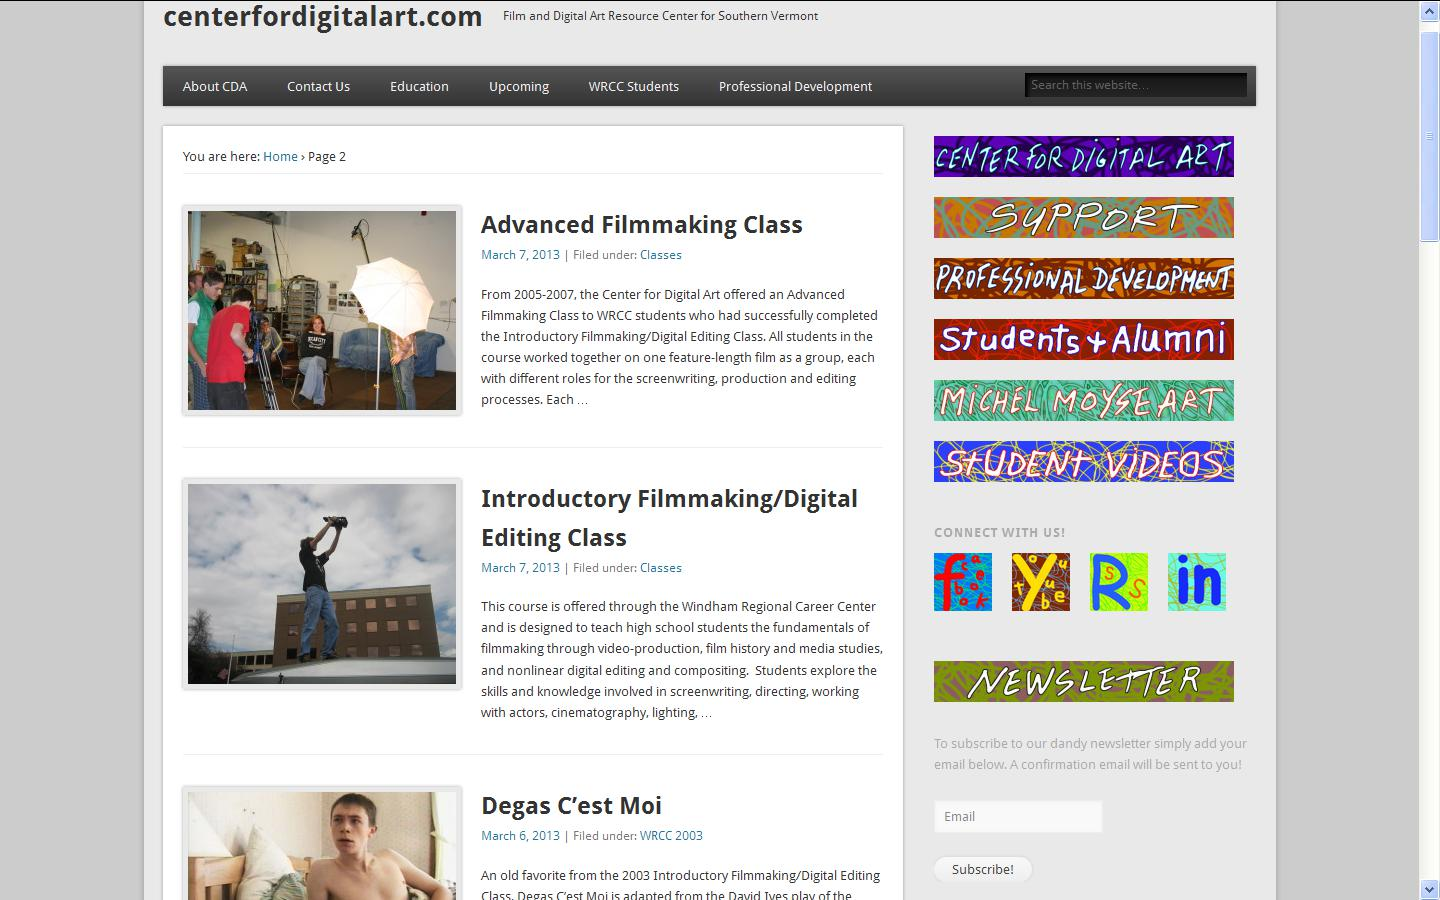 Center for Digital Art Articles page